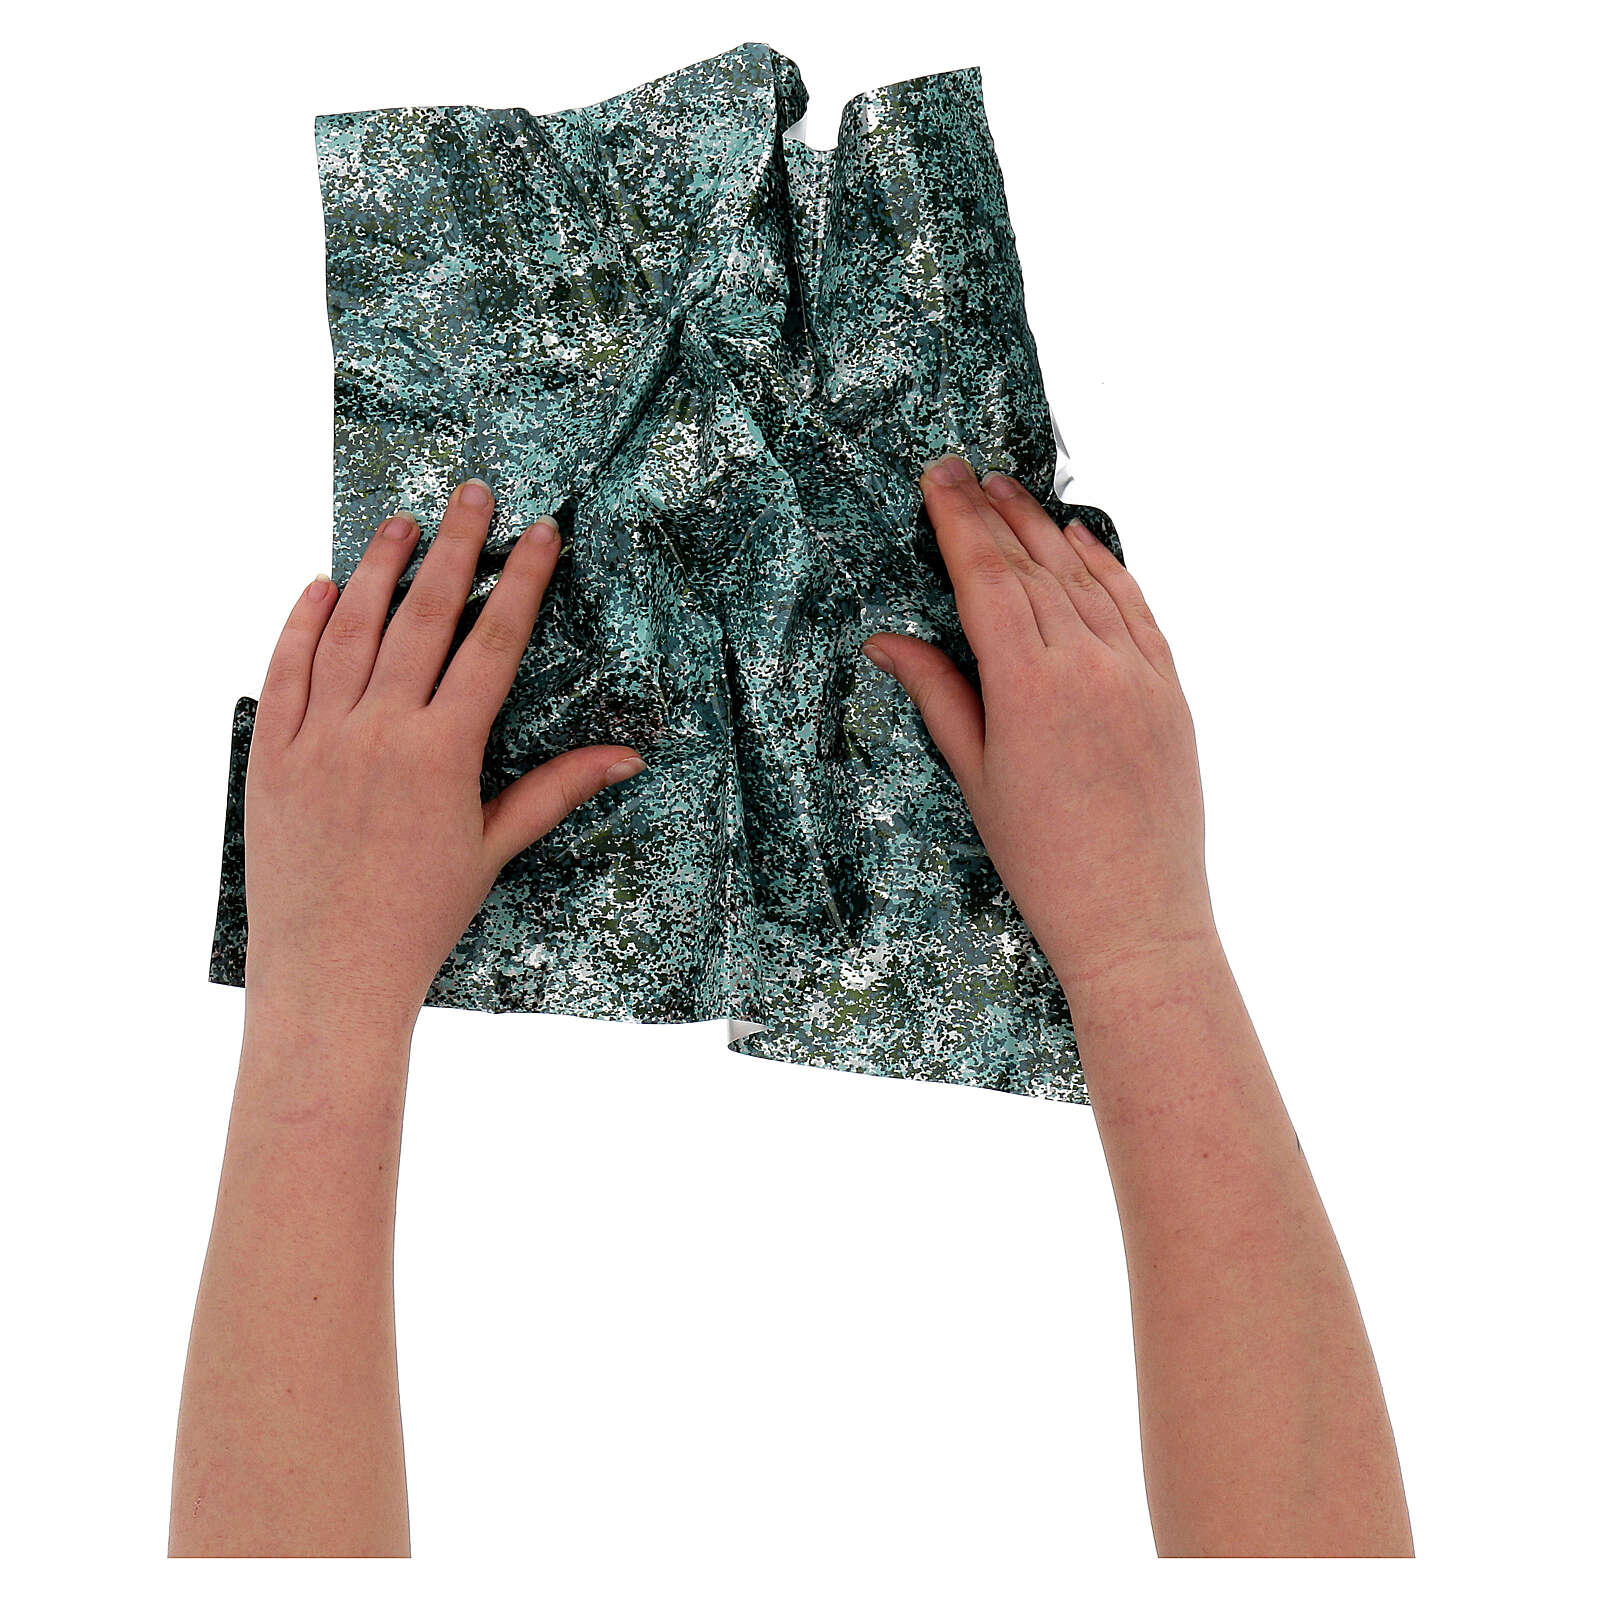 Mouldable paper, green water effect 35x35 cm 4